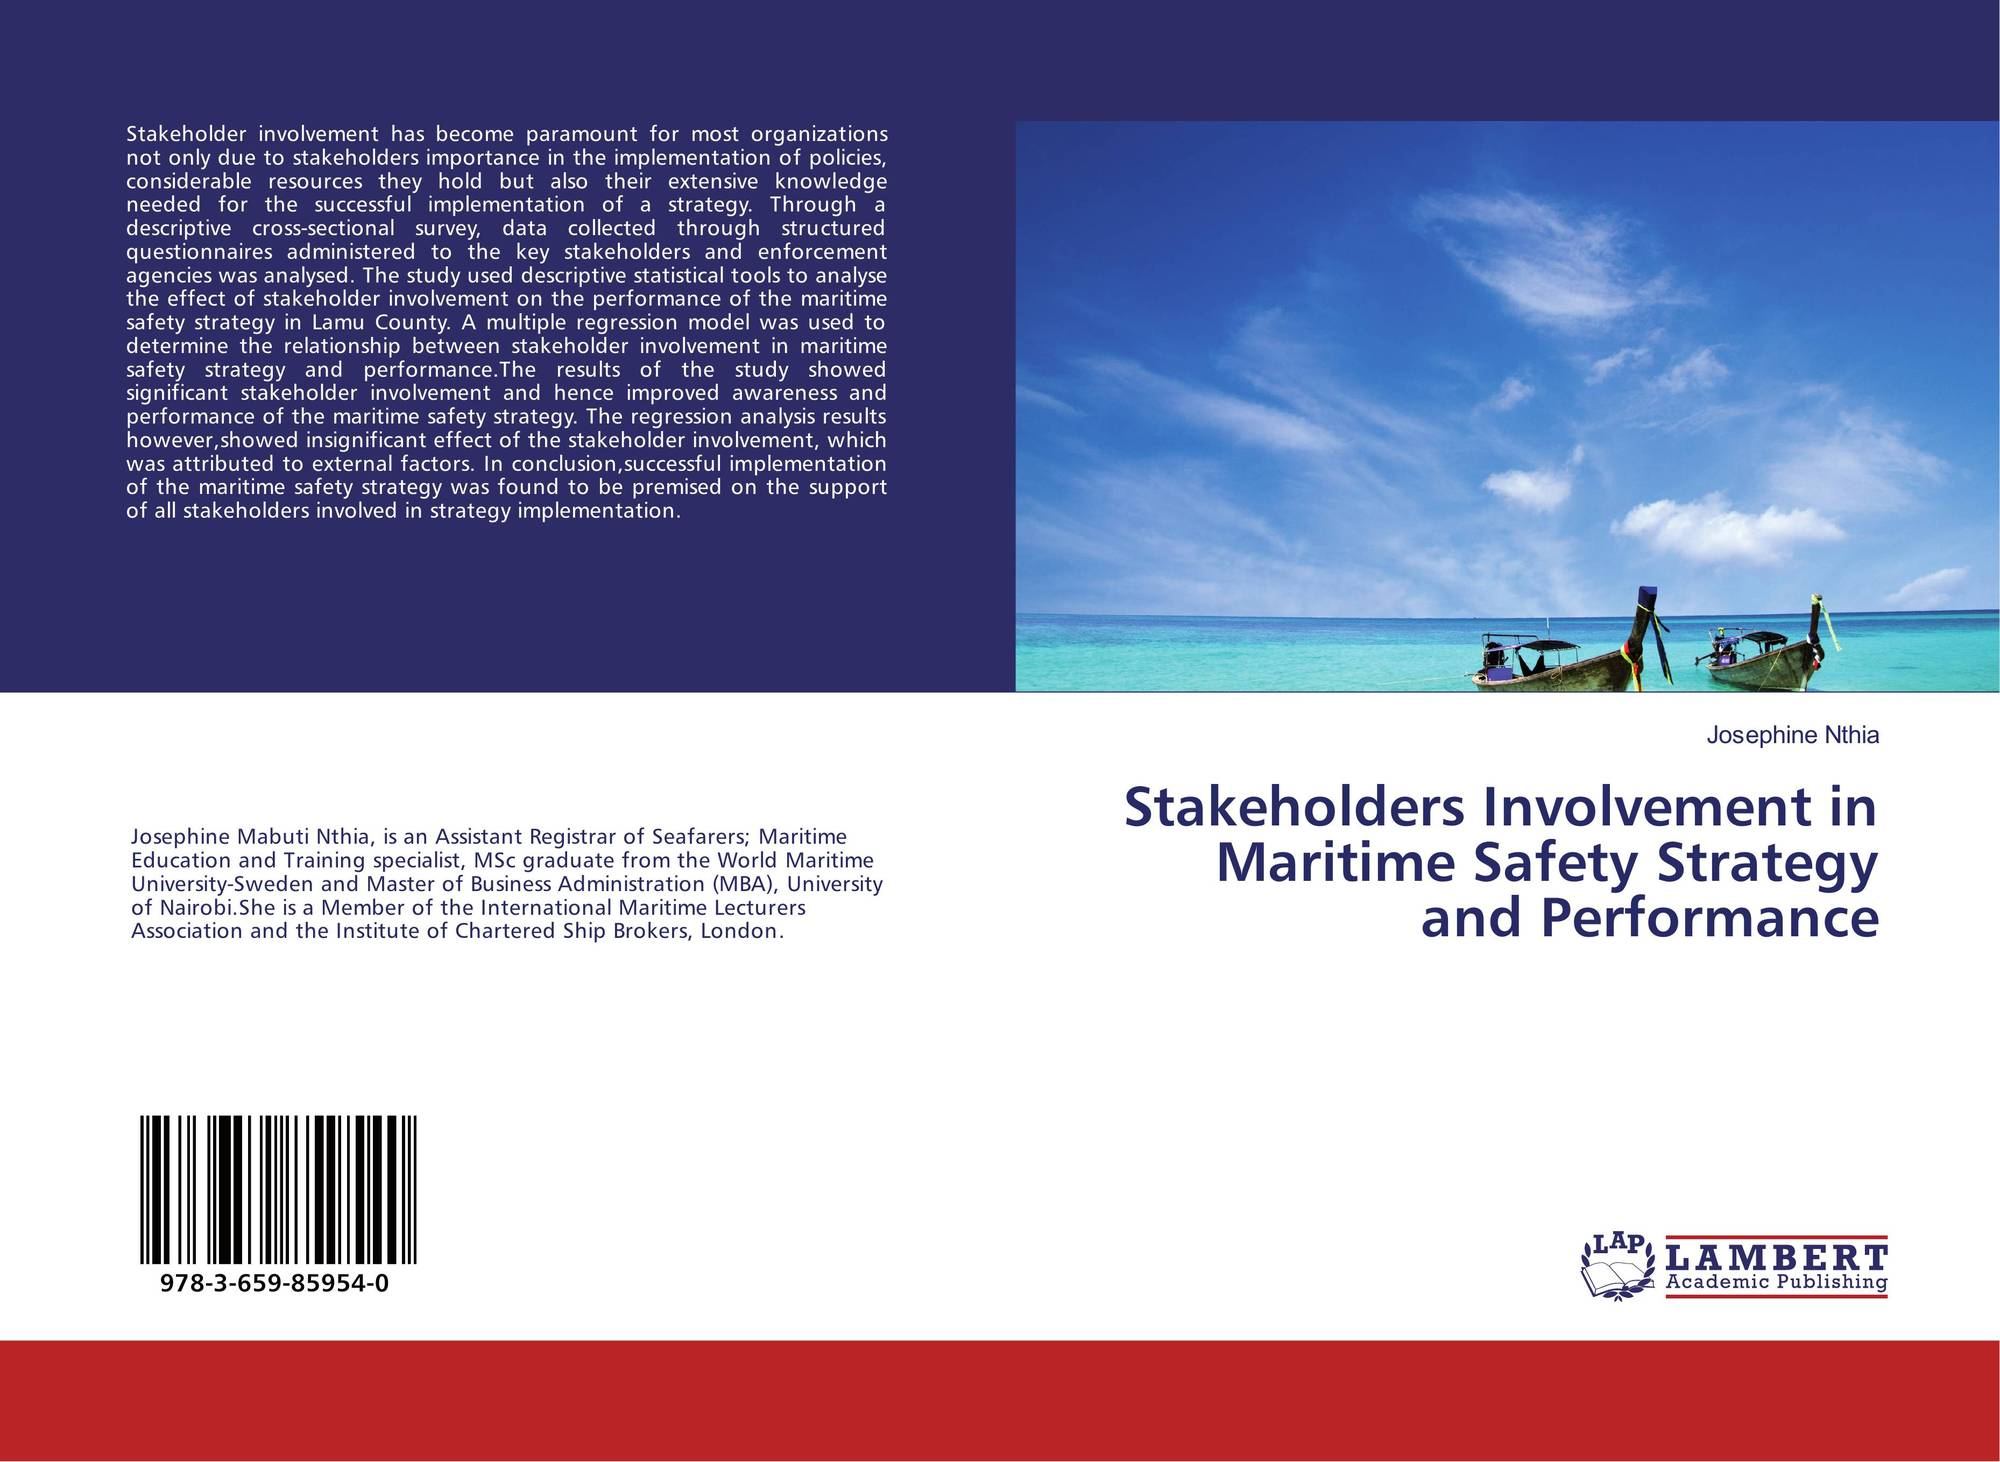 an analysis of the topic of many organisations and the relationship of the stakeholders Published: tue, 26 sep 2017 1 briefly describe the seven steps of stakeholder analysis a map stakeholder relationship before the stakeholder relationship has been made, there are some questions that will be asked for analysis and identifying major stakeholder.